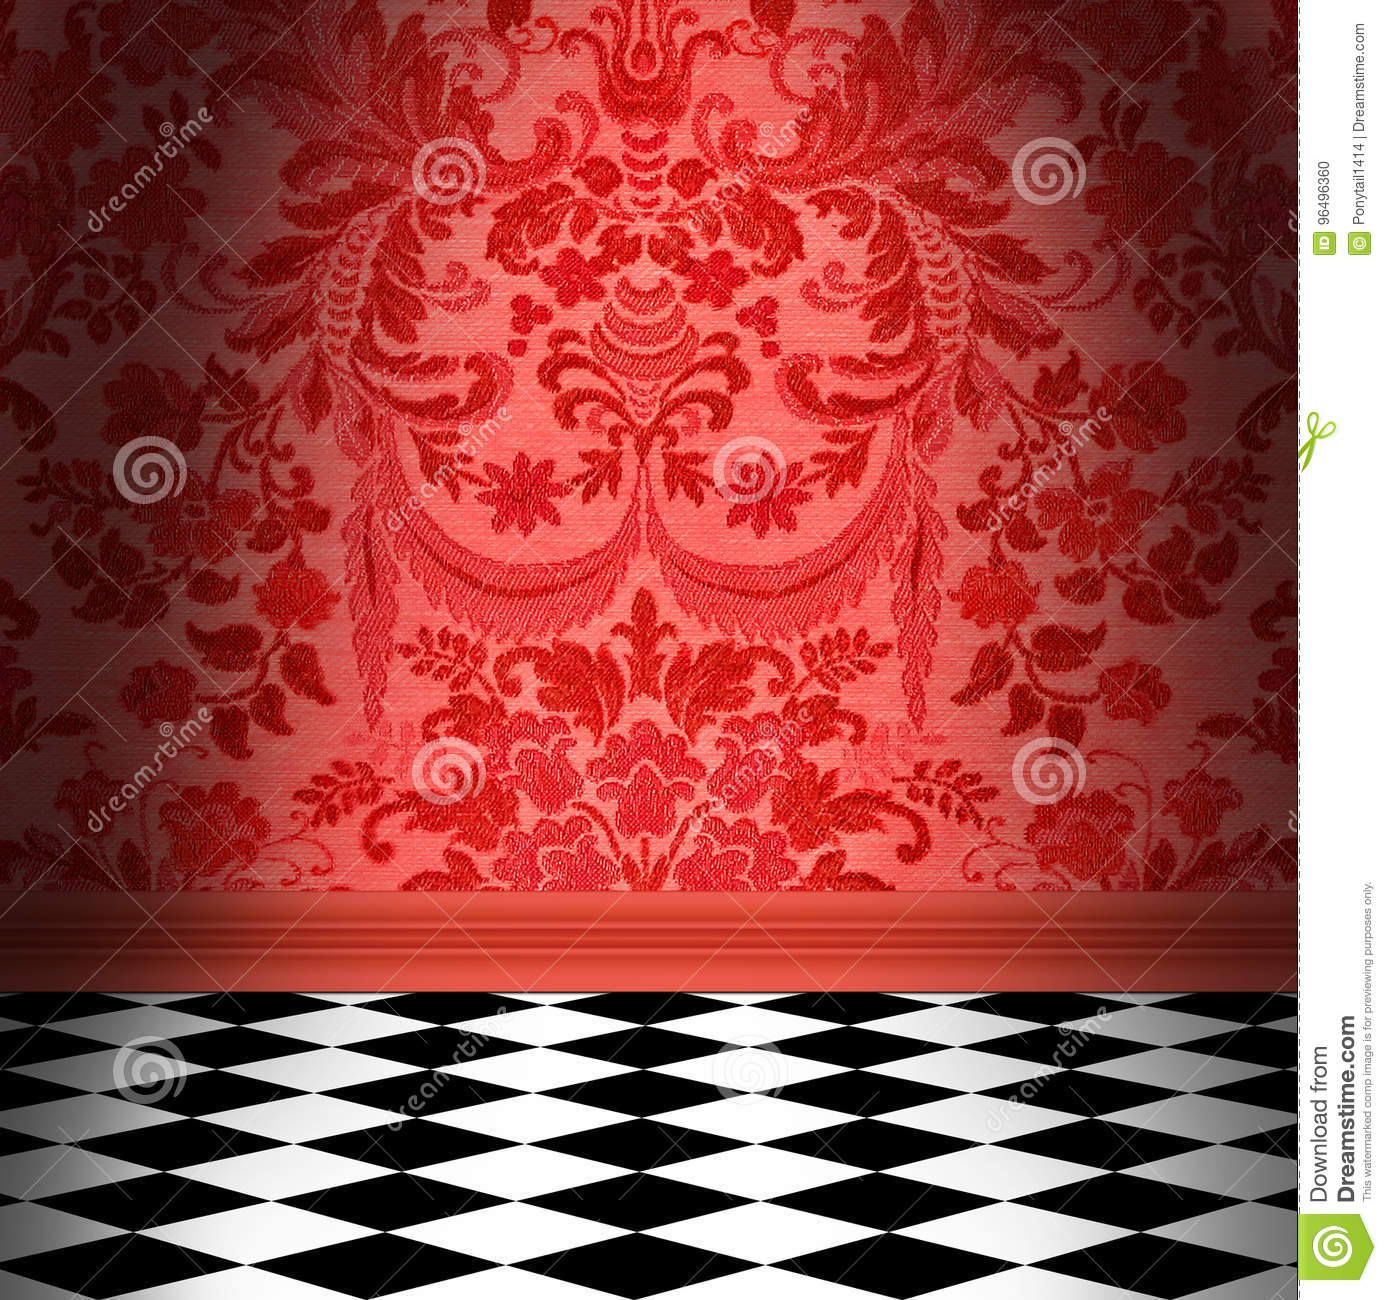 Red Damask Wallpaper With Black & White Checkerboard Tile Floor